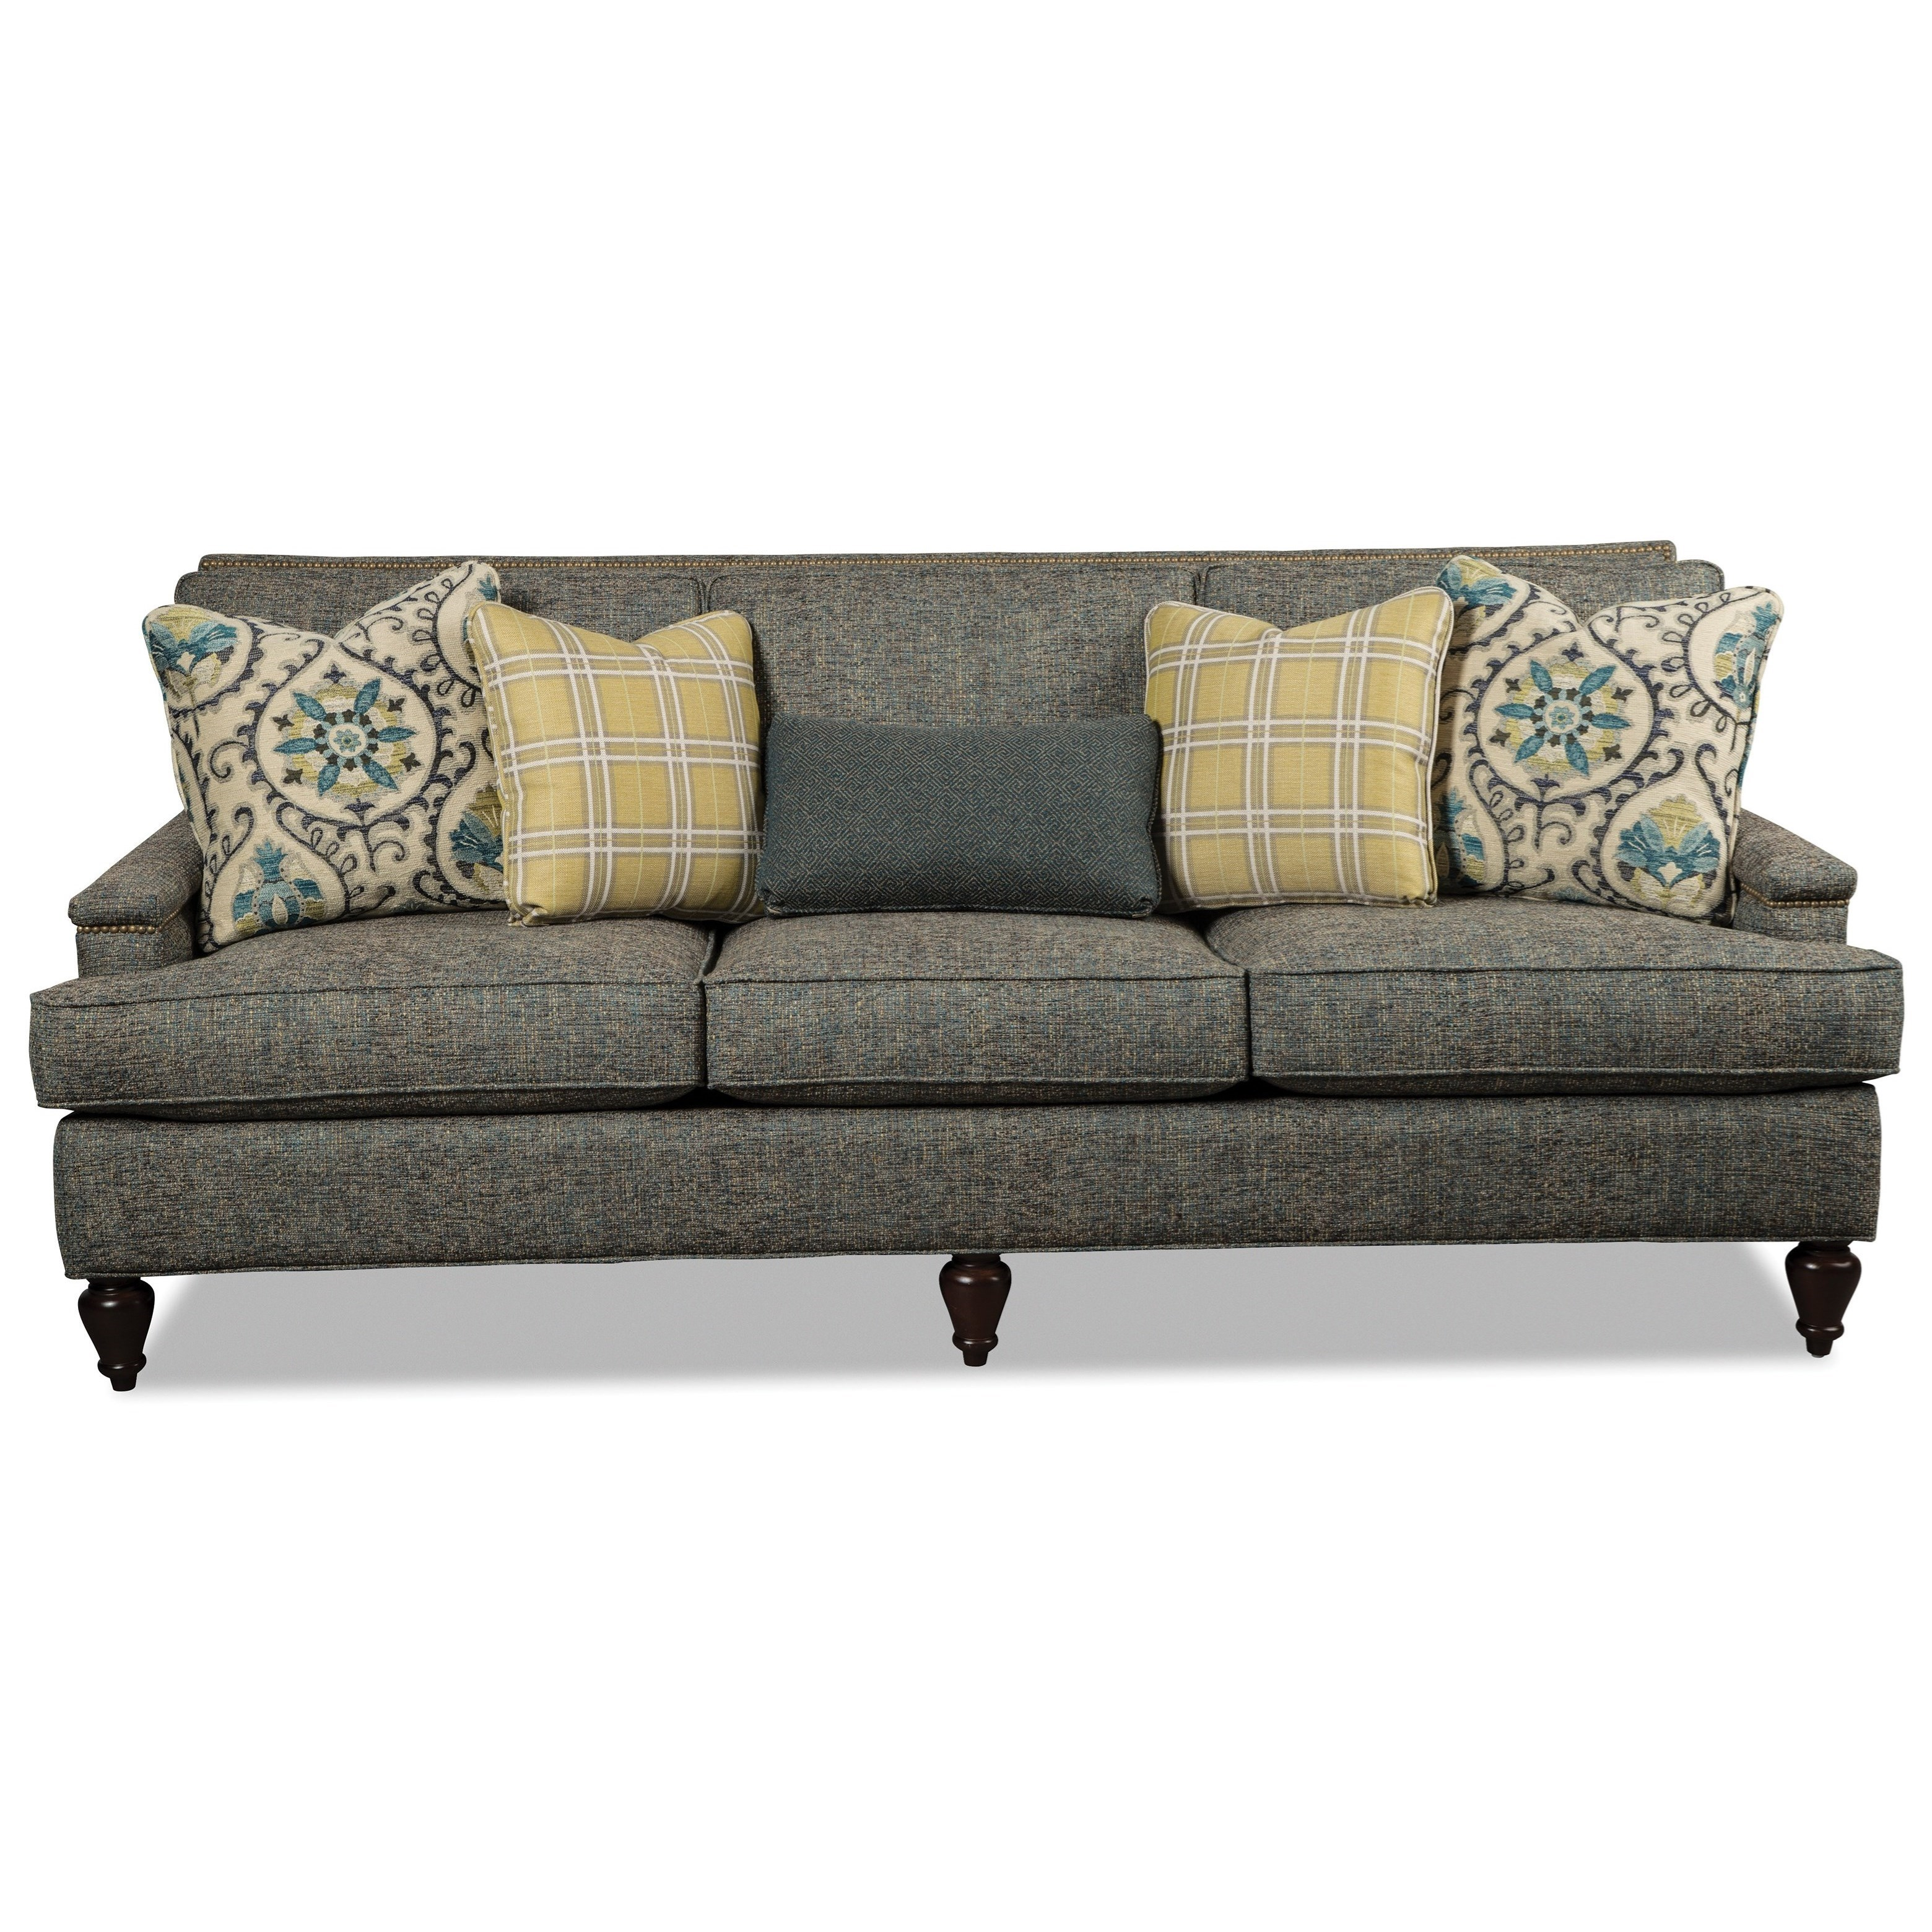 Transitional 90 Inch Sofa with Light Brass Nailheads